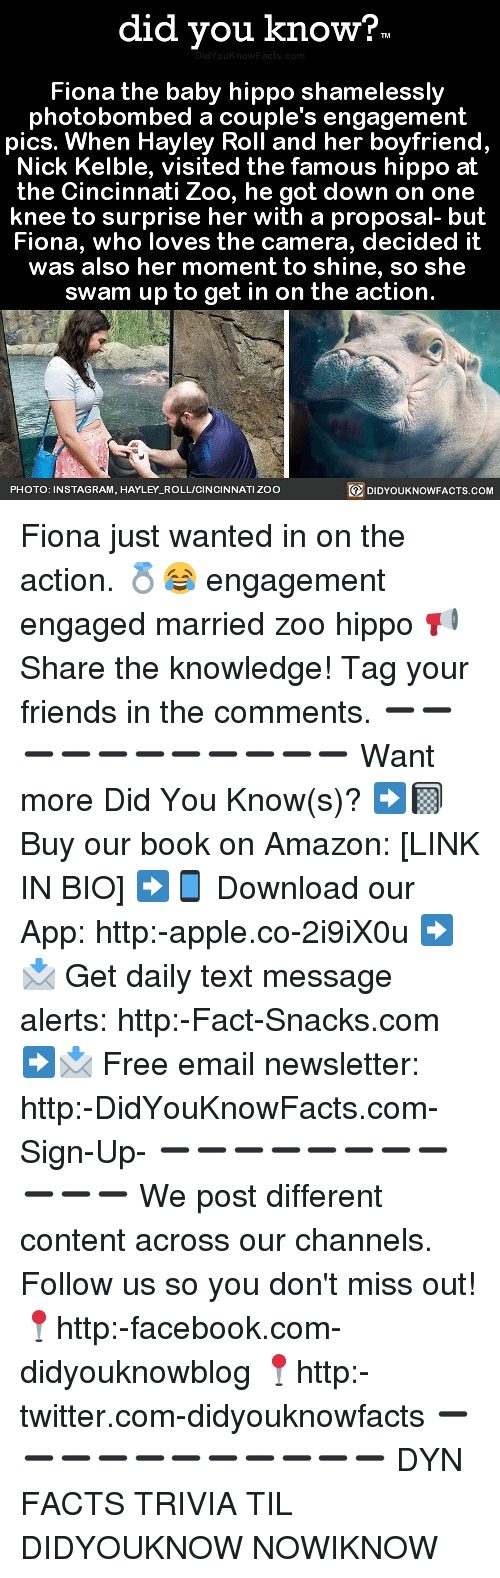 Amazon, Apple, and Facebook: did you know?  Fiona the baby hippo shamelessly  photobombed a couple's engagement  pics. When Hayley Roll and her boyfriend  Nick Kelble, visited the famous hippo at  the Cincinnati Zoo, he got down on one  knee to surprise her with a proposal- but  Fiona, who loves the camera, decided it  was also her moment to shine, so she  swam up to get in on the action.  PHOTO: INSTAGRAM, HAYLEY_ROLL/CINCINNATI ZOC  回DIDYOUKNOWFACTS.COM Fiona just wanted in on the action. 💍😂 engagement engaged married zoo hippo 📢 Share the knowledge! Tag your friends in the comments. ➖➖➖➖➖➖➖➖➖➖➖ Want more Did You Know(s)? ➡📓 Buy our book on Amazon: [LINK IN BIO] ➡📱 Download our App: http:-apple.co-2i9iX0u ➡📩 Get daily text message alerts: http:-Fact-Snacks.com ➡📩 Free email newsletter: http:-DidYouKnowFacts.com-Sign-Up- ➖➖➖➖➖➖➖➖➖➖➖ We post different content across our channels. Follow us so you don't miss out! 📍http:-facebook.com-didyouknowblog 📍http:-twitter.com-didyouknowfacts ➖➖➖➖➖➖➖➖➖➖➖ DYN FACTS TRIVIA TIL DIDYOUKNOW NOWIKNOW